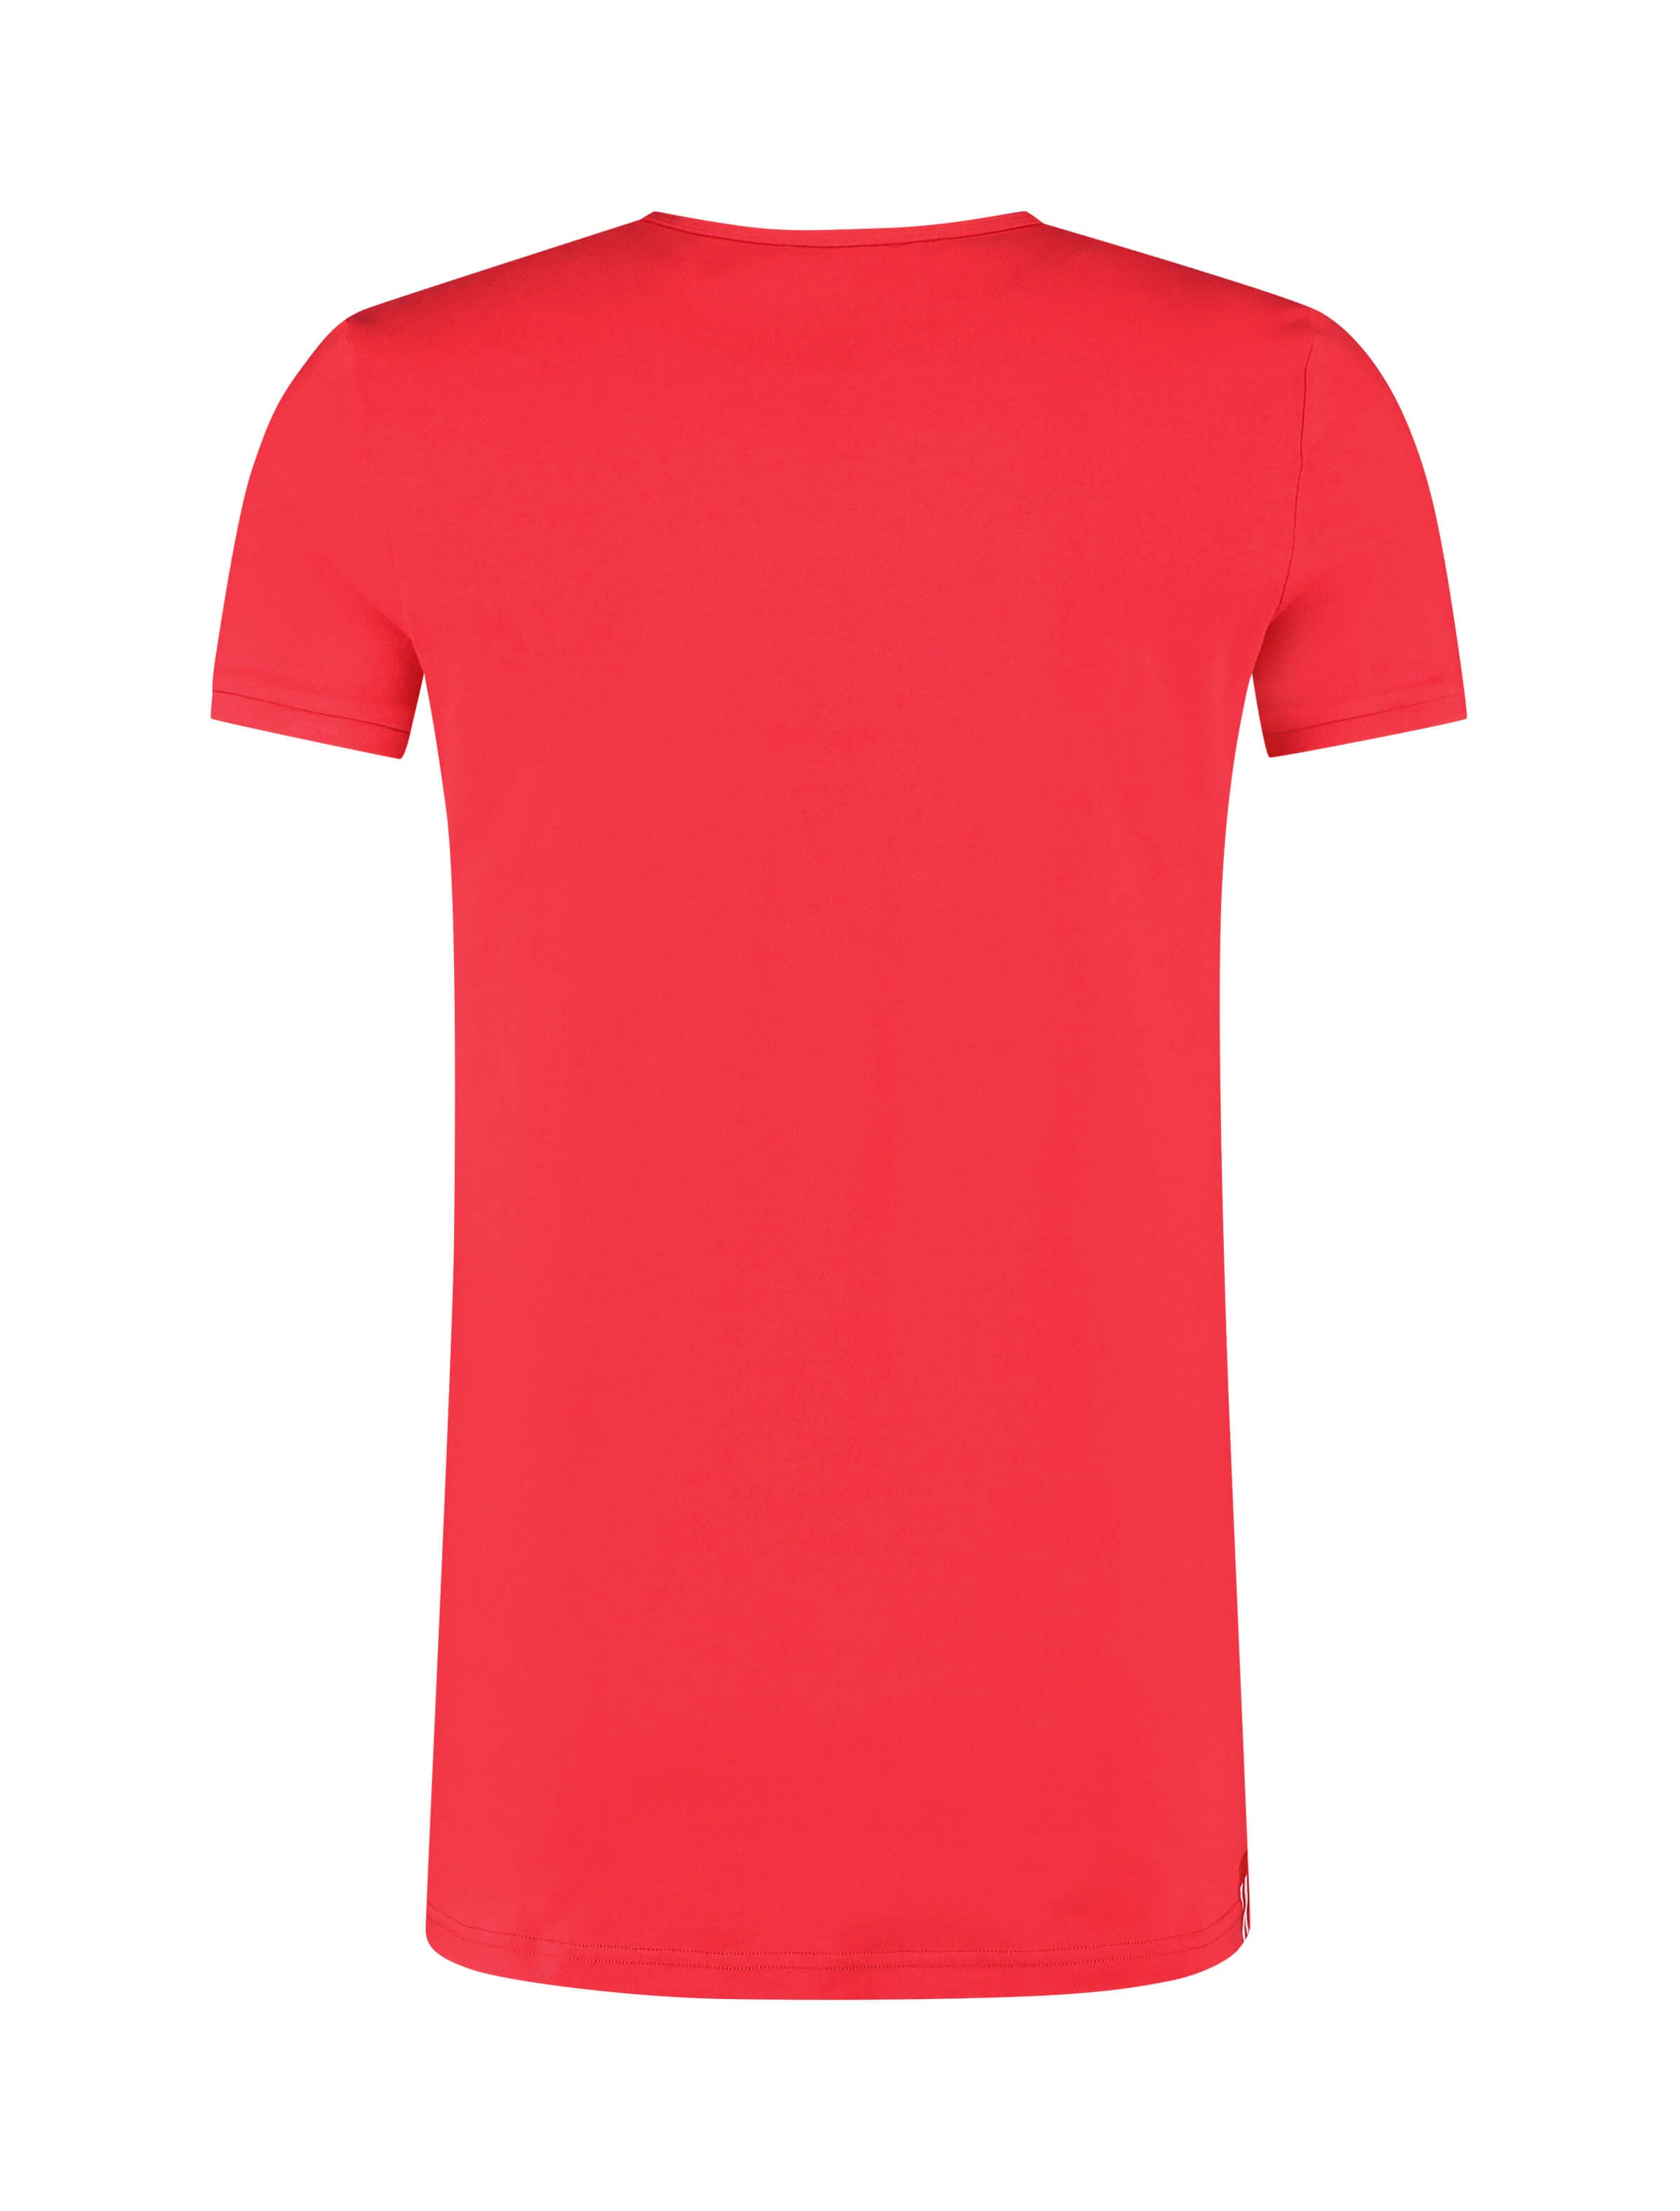 Adonis Short Sleeve T-shirt Red